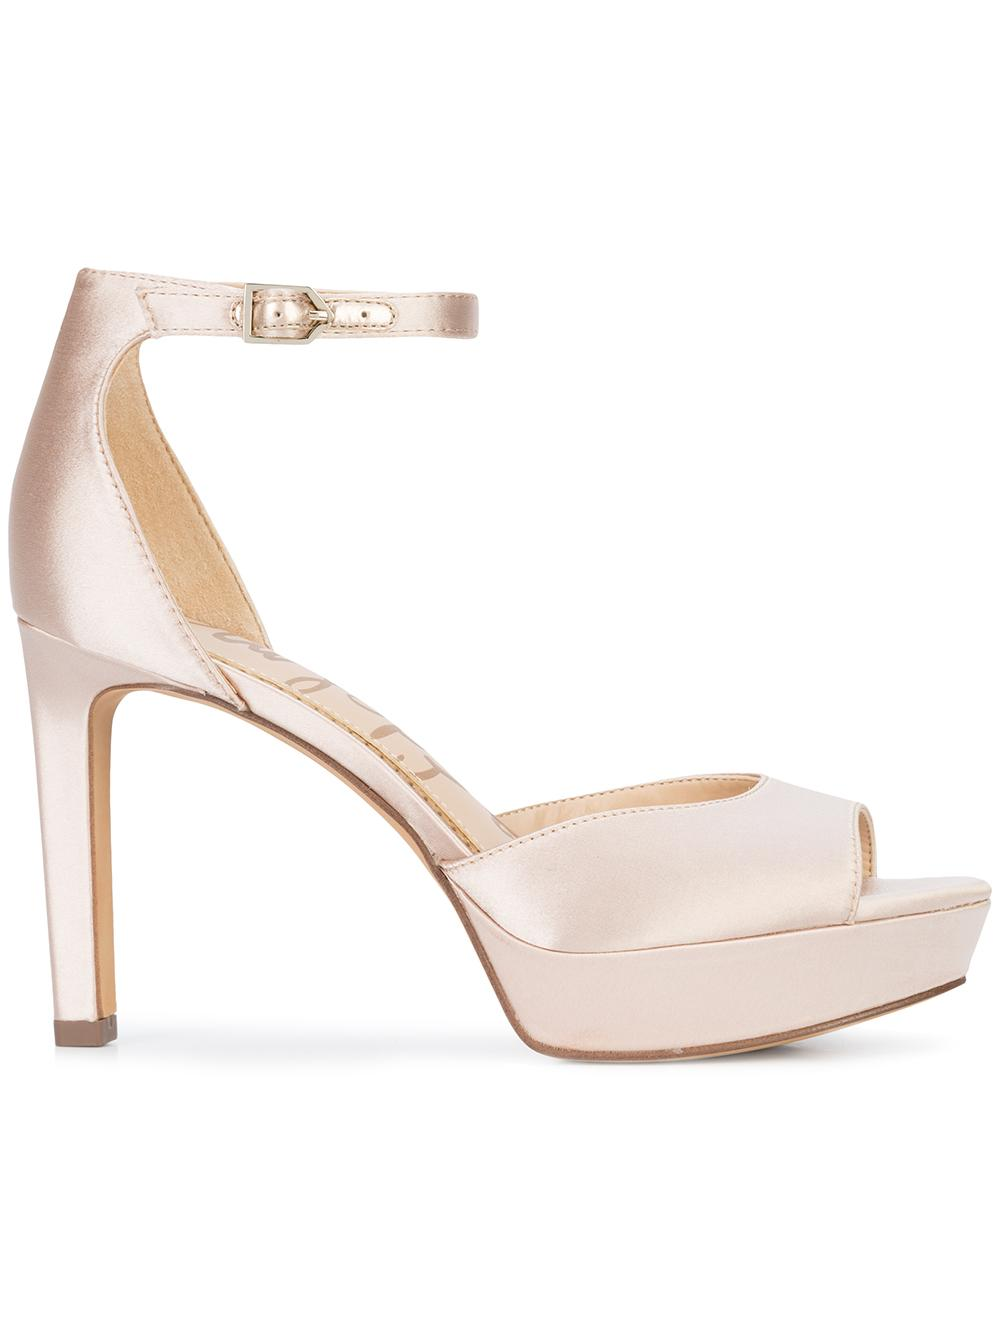 Satin Peep Toe High Heel With Ankle Strap Item # JERIN